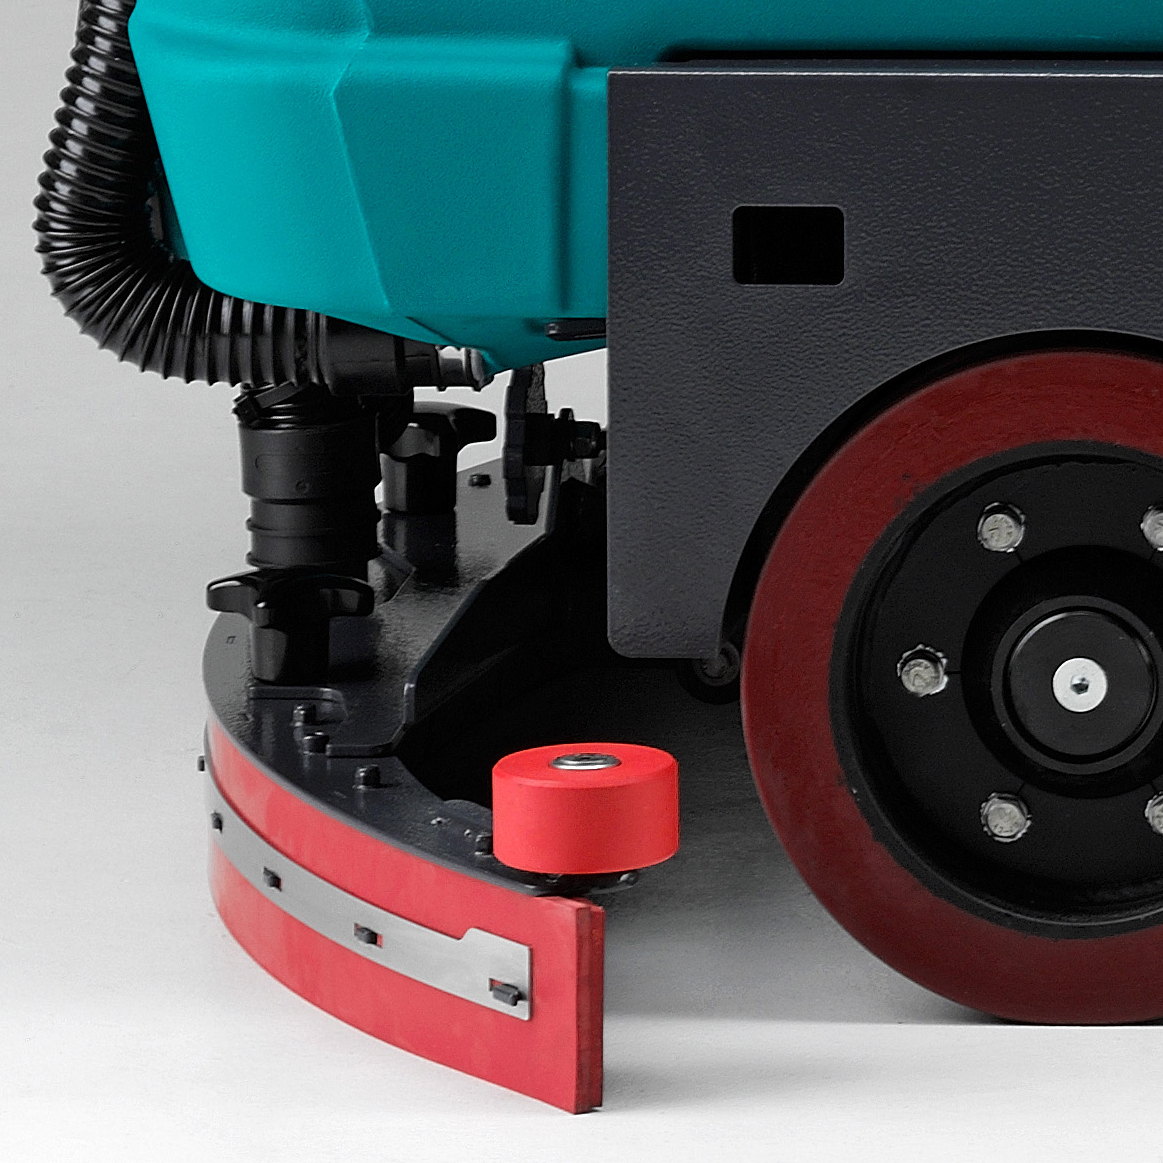 TOOL-FREE ADJUSTABLE SQUEEGEE E110 RIDE-ON SCRUBBER-DRYER